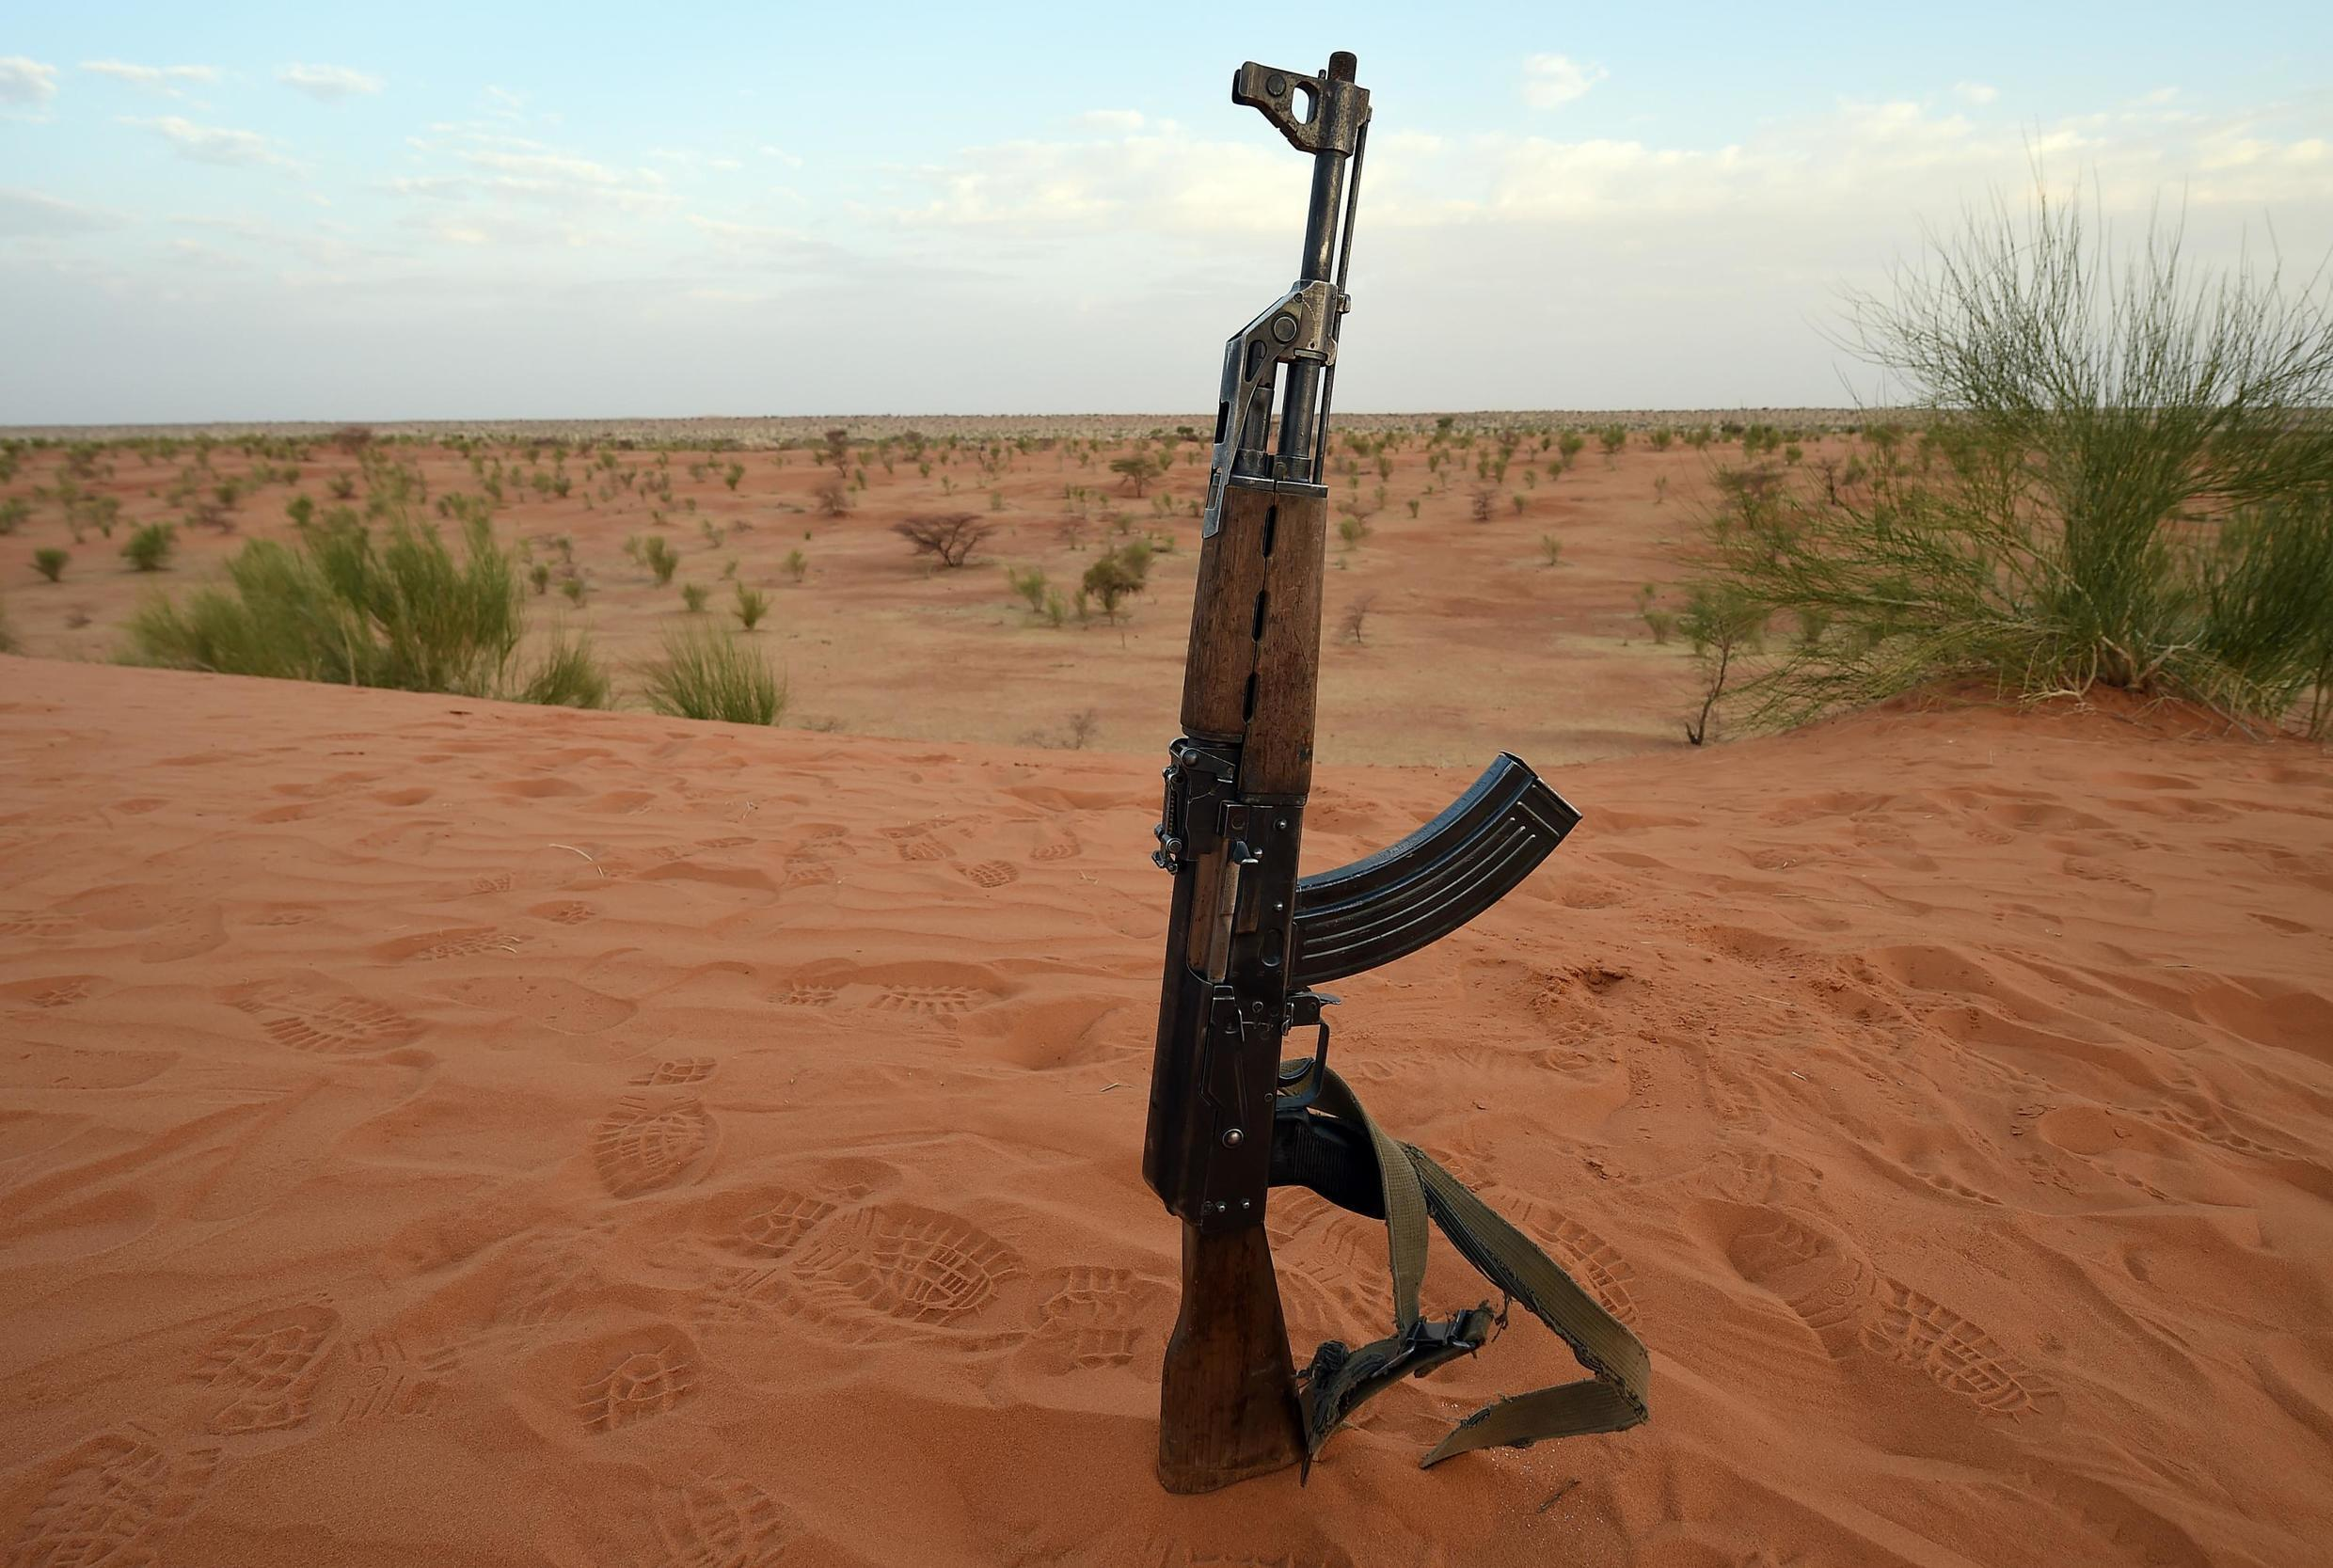 The Malian government has blamed terrorists for an attack on a Dogon village that left up to 100 people dead. But the attack has so far not been claimed. (Image used for illustration purposes)